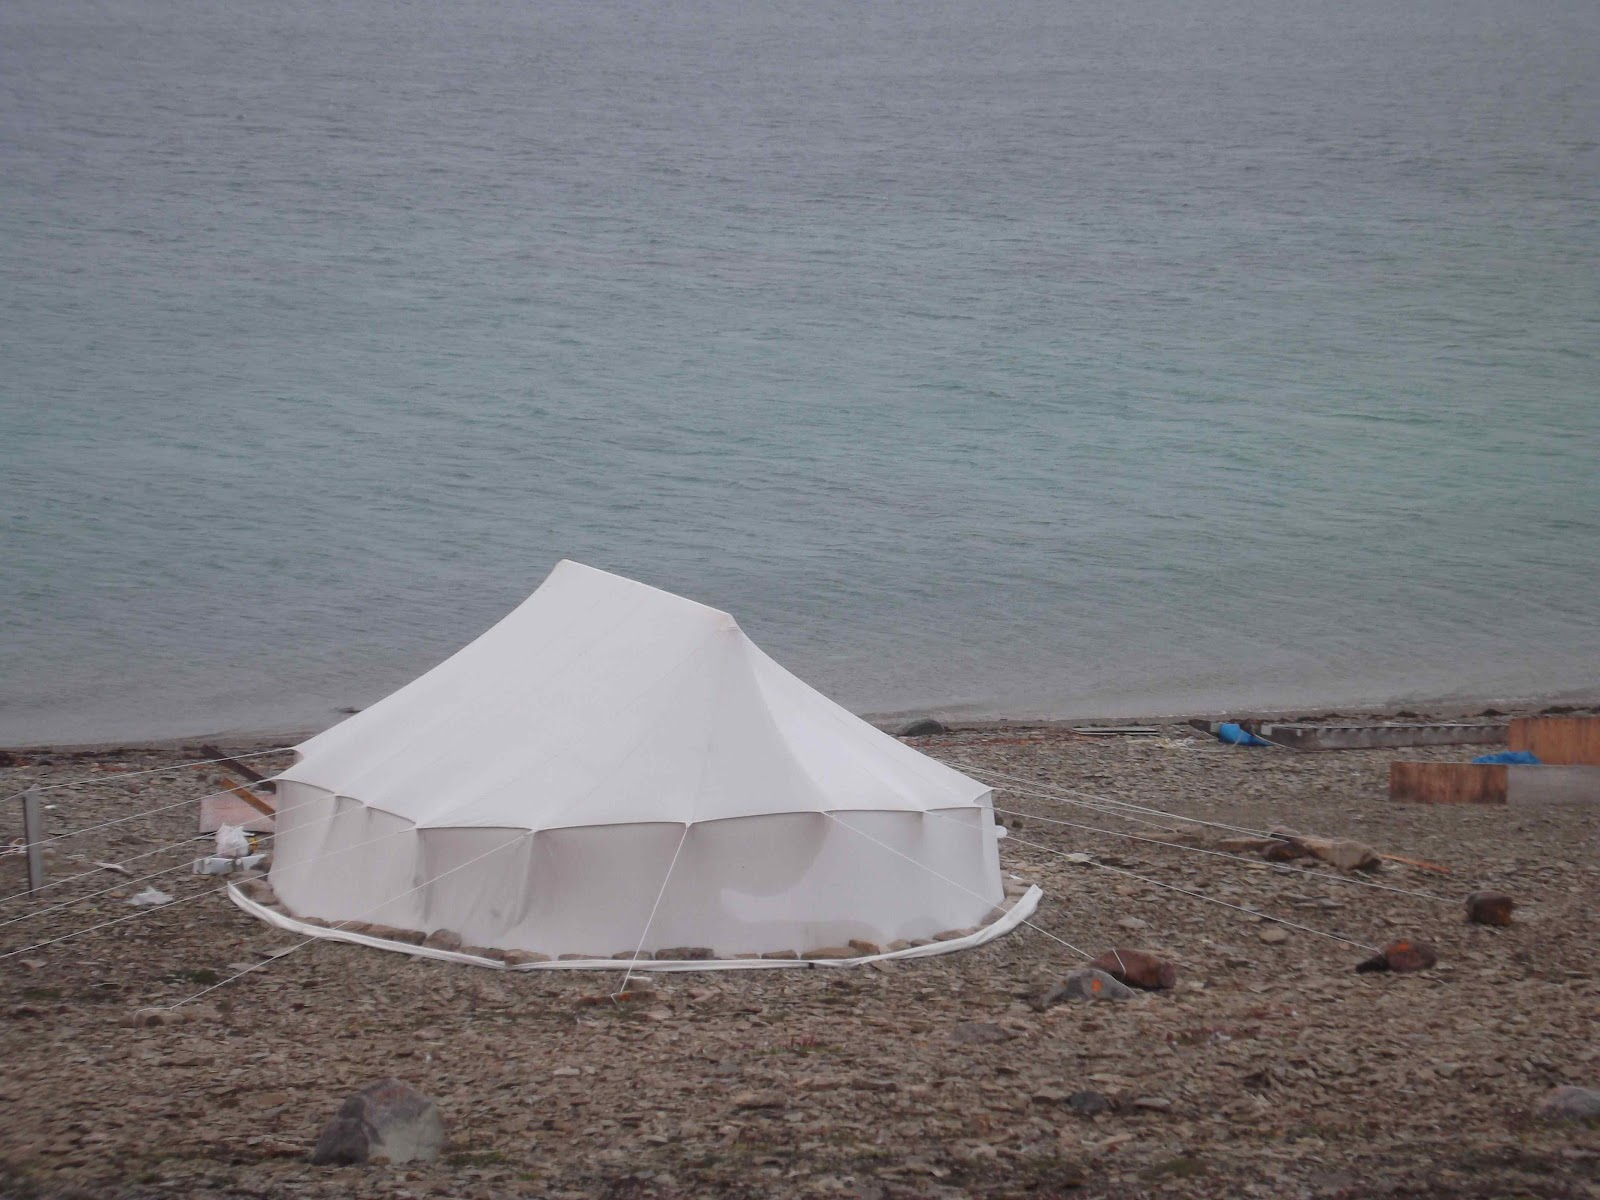 Inuit tent not far down the beach. (Thatu0027s Bobu0027s kind of tent!) Notice the modern tent rings of stone? & Ice Hawg: August 2012